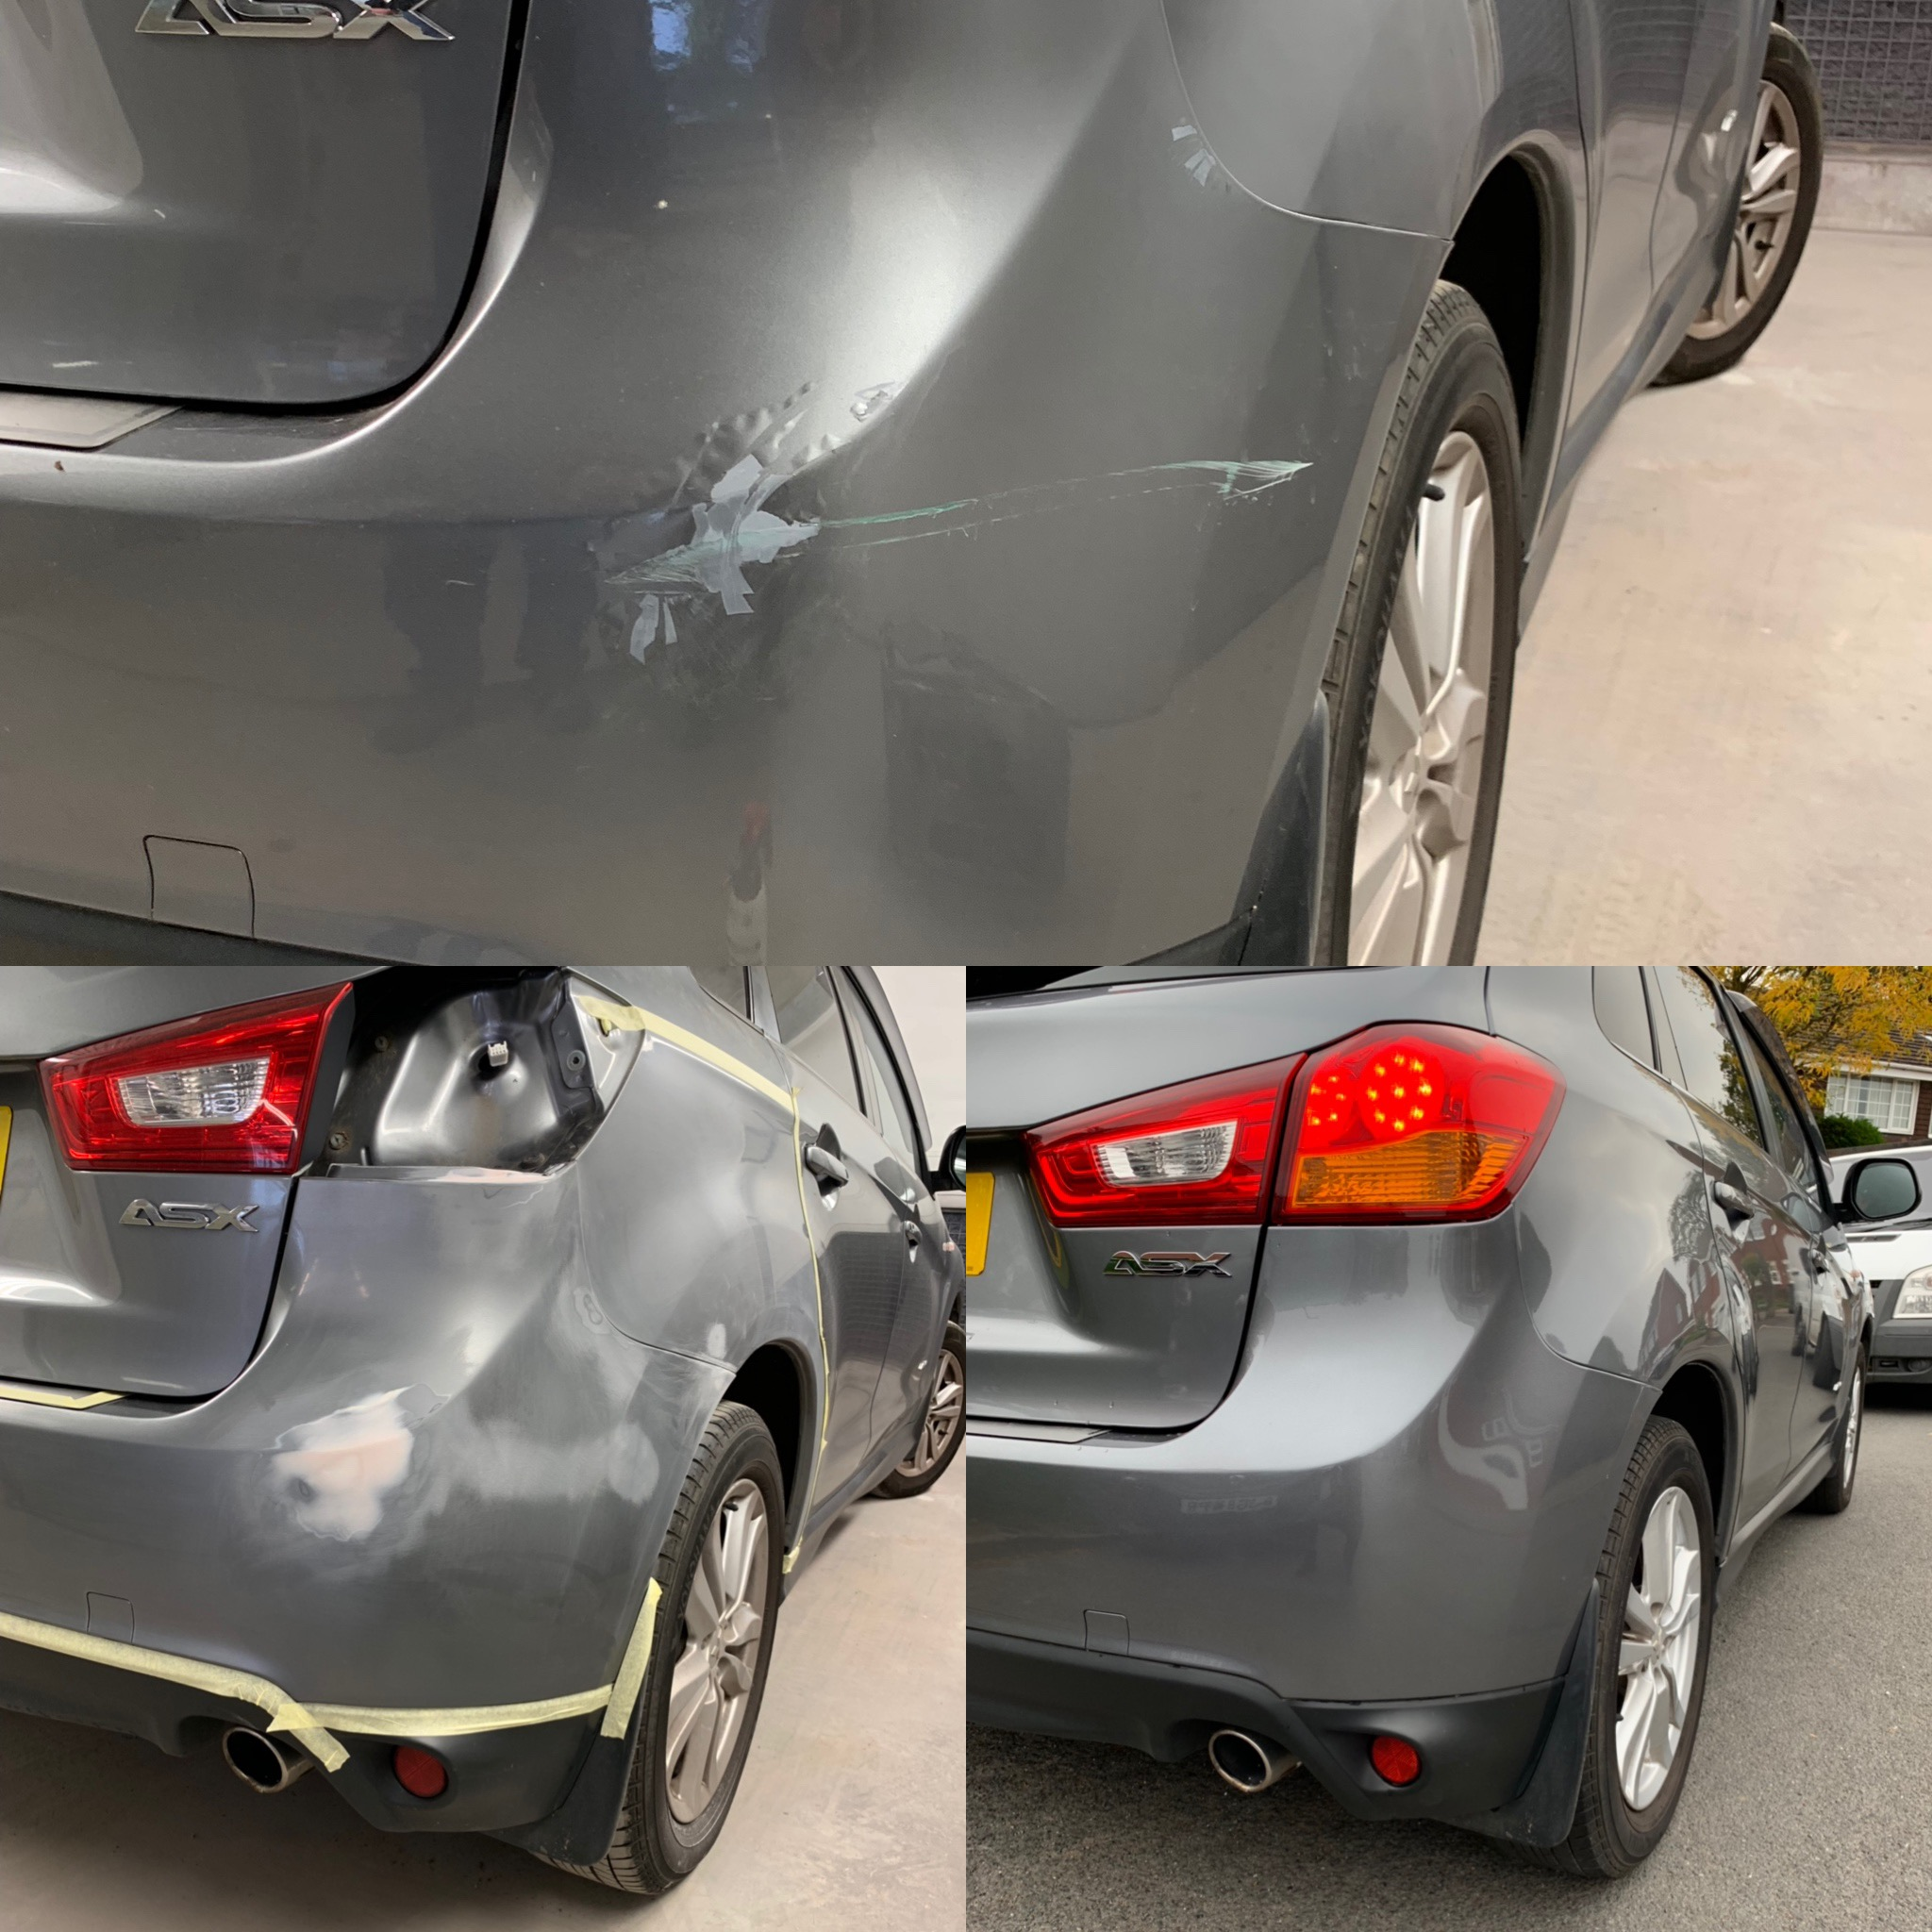 R. Bumper Scratch Repair